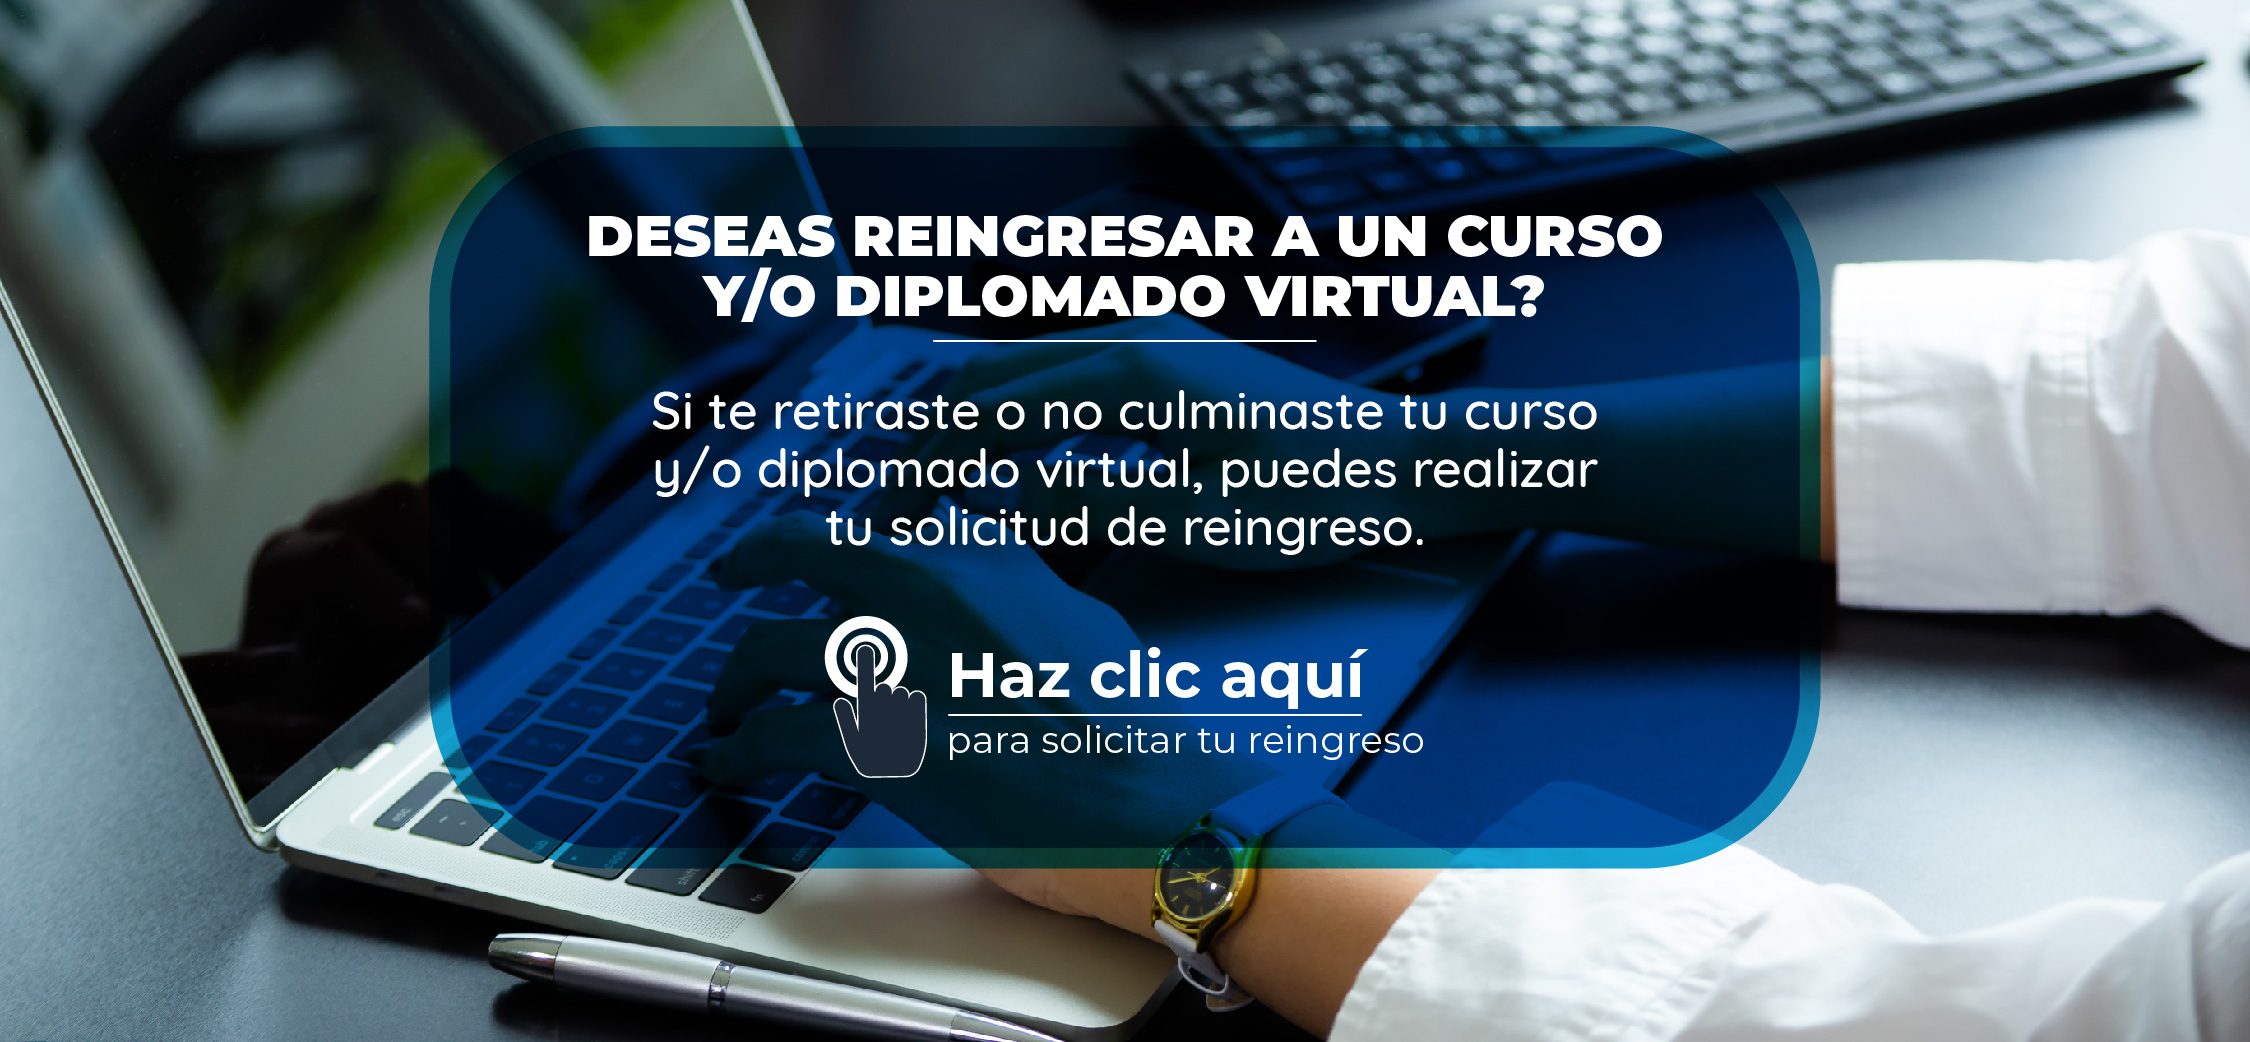 Reingreso_escuela_virtual_20199-01